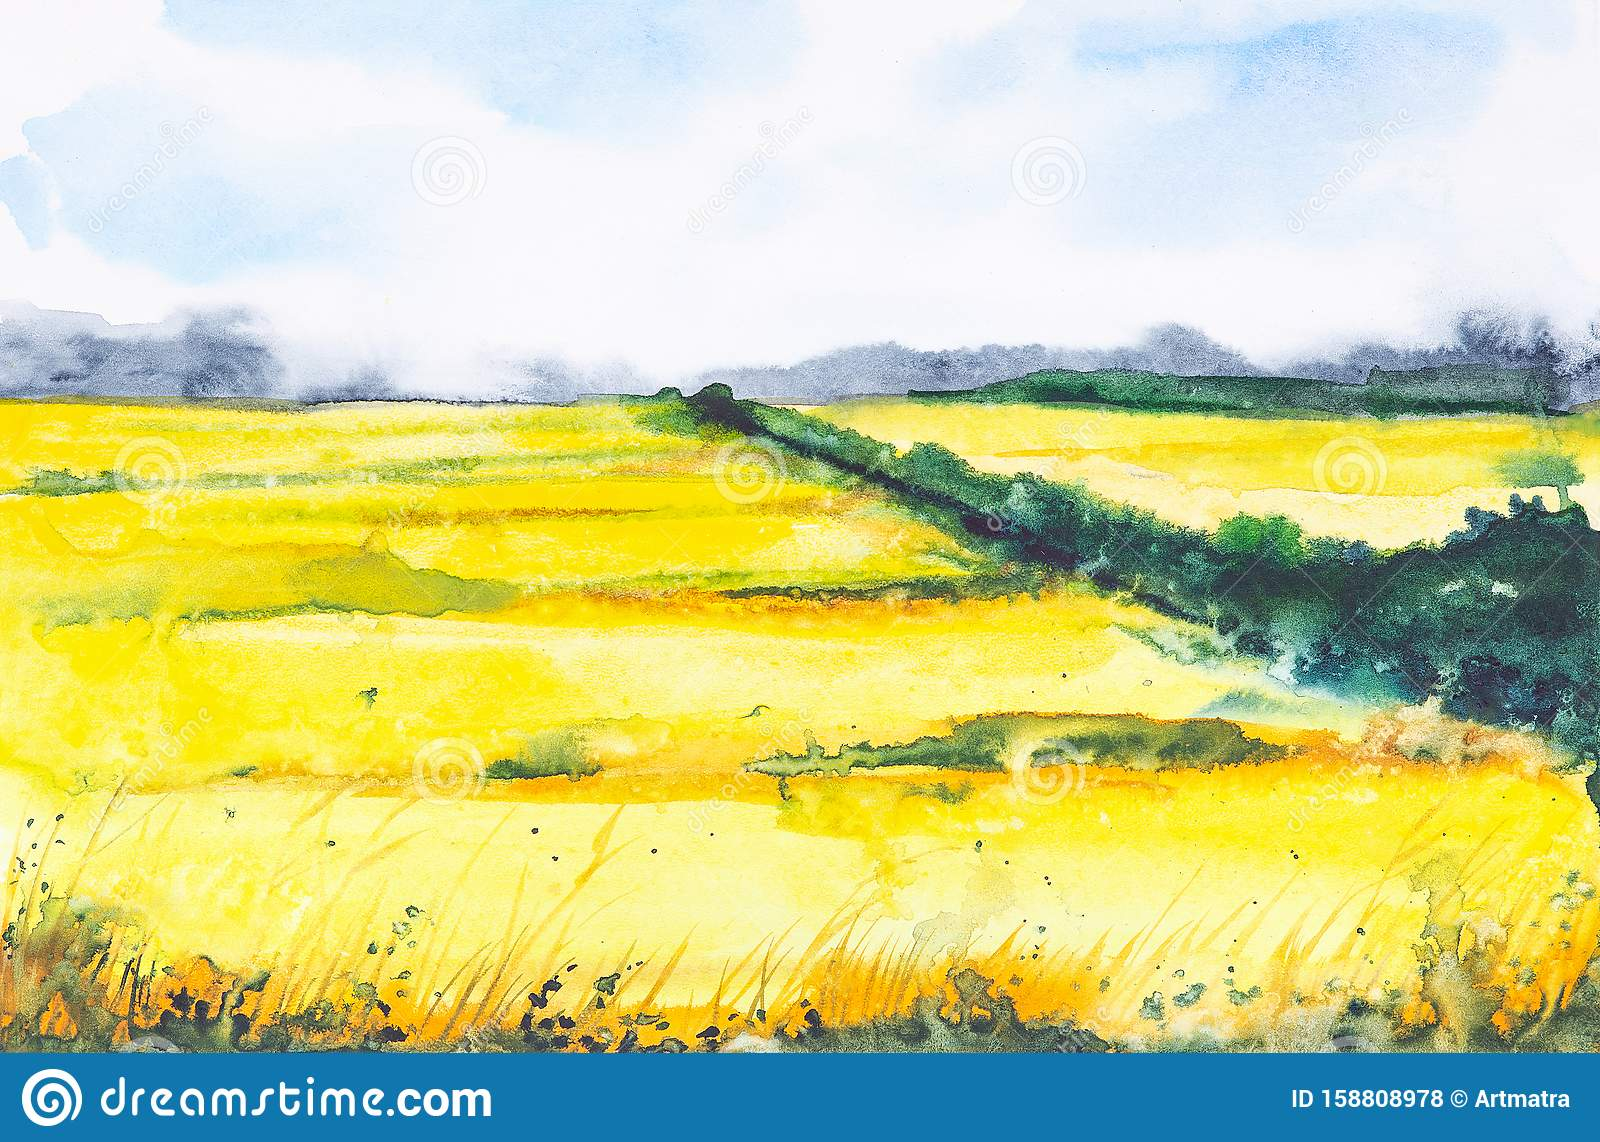 Watercolor illustration of a Russian field with a forest in the background